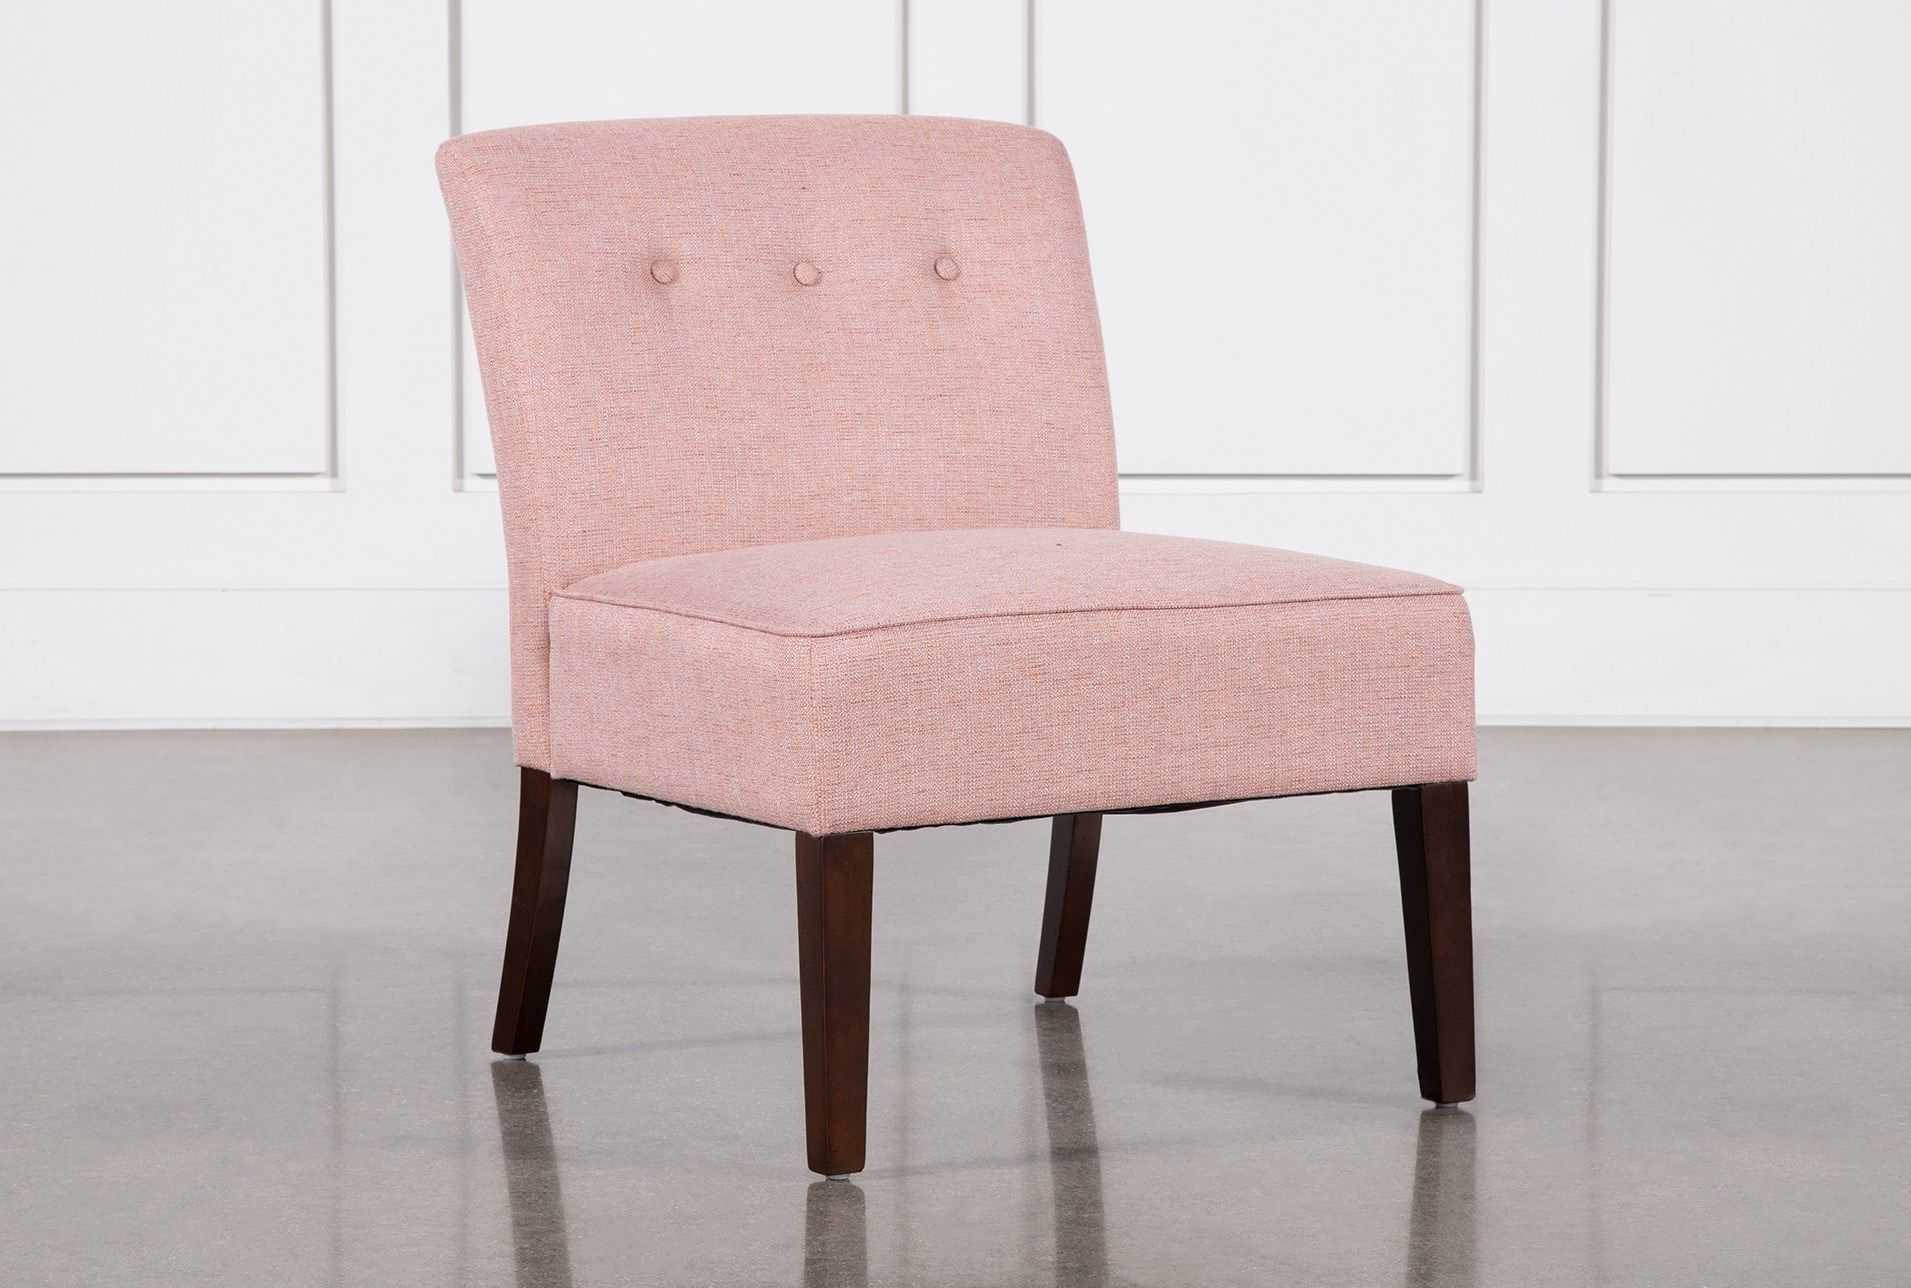 Best Rosie Blush Accent Chair Accent Chairs Blush Accents Chair 400 x 300